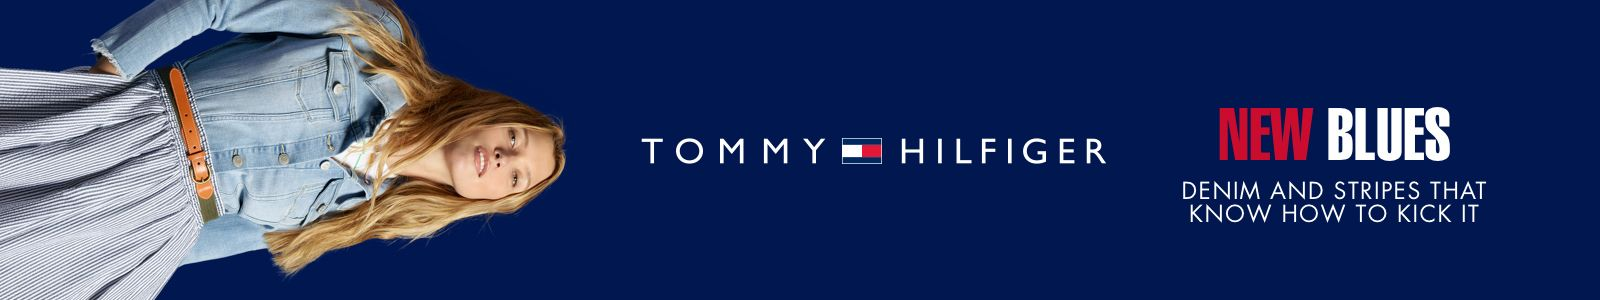 Tommy Hilfiger, New Blues